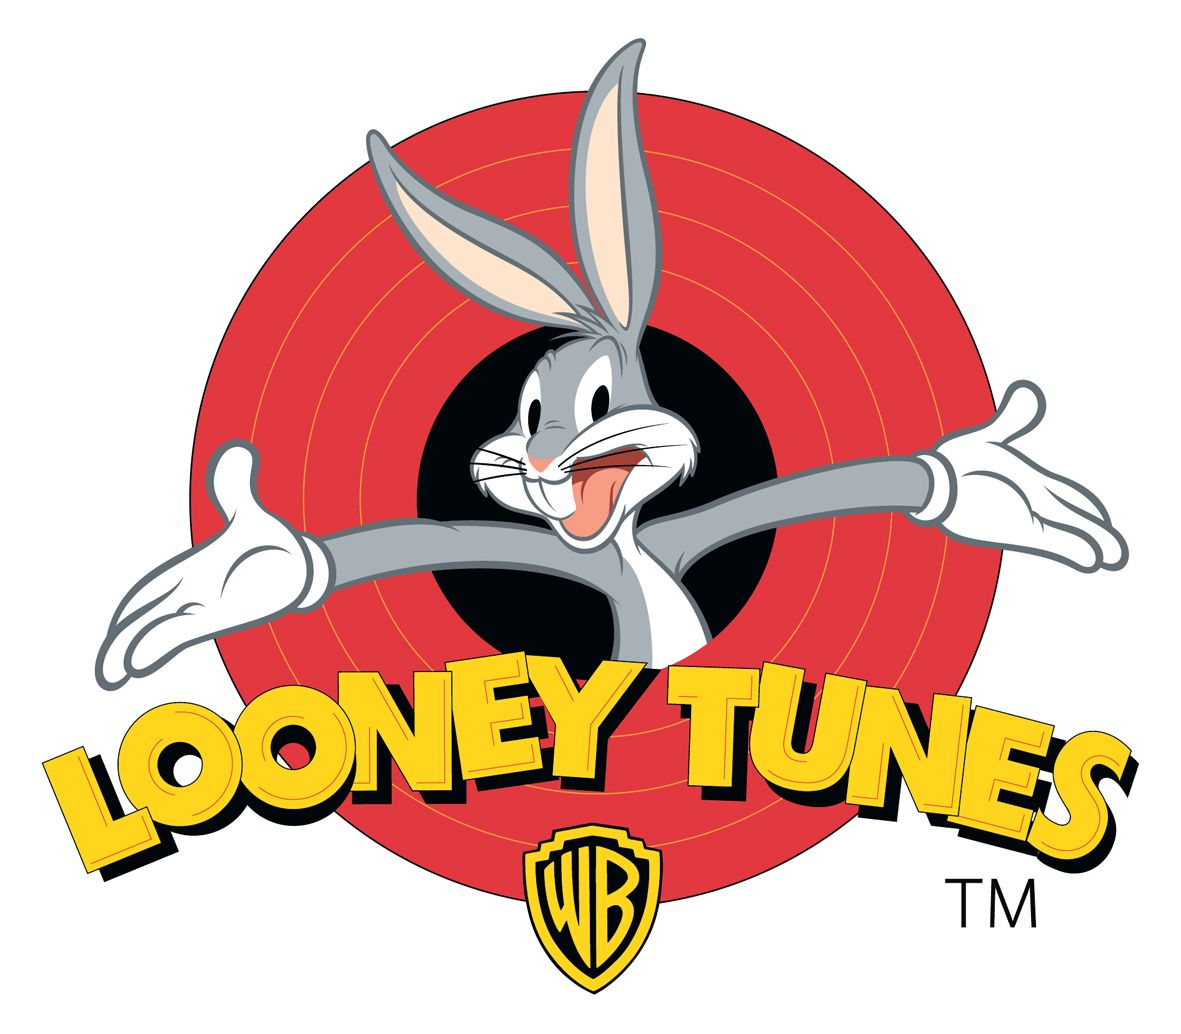 Clipart of the Looney Tunes Logo free image.